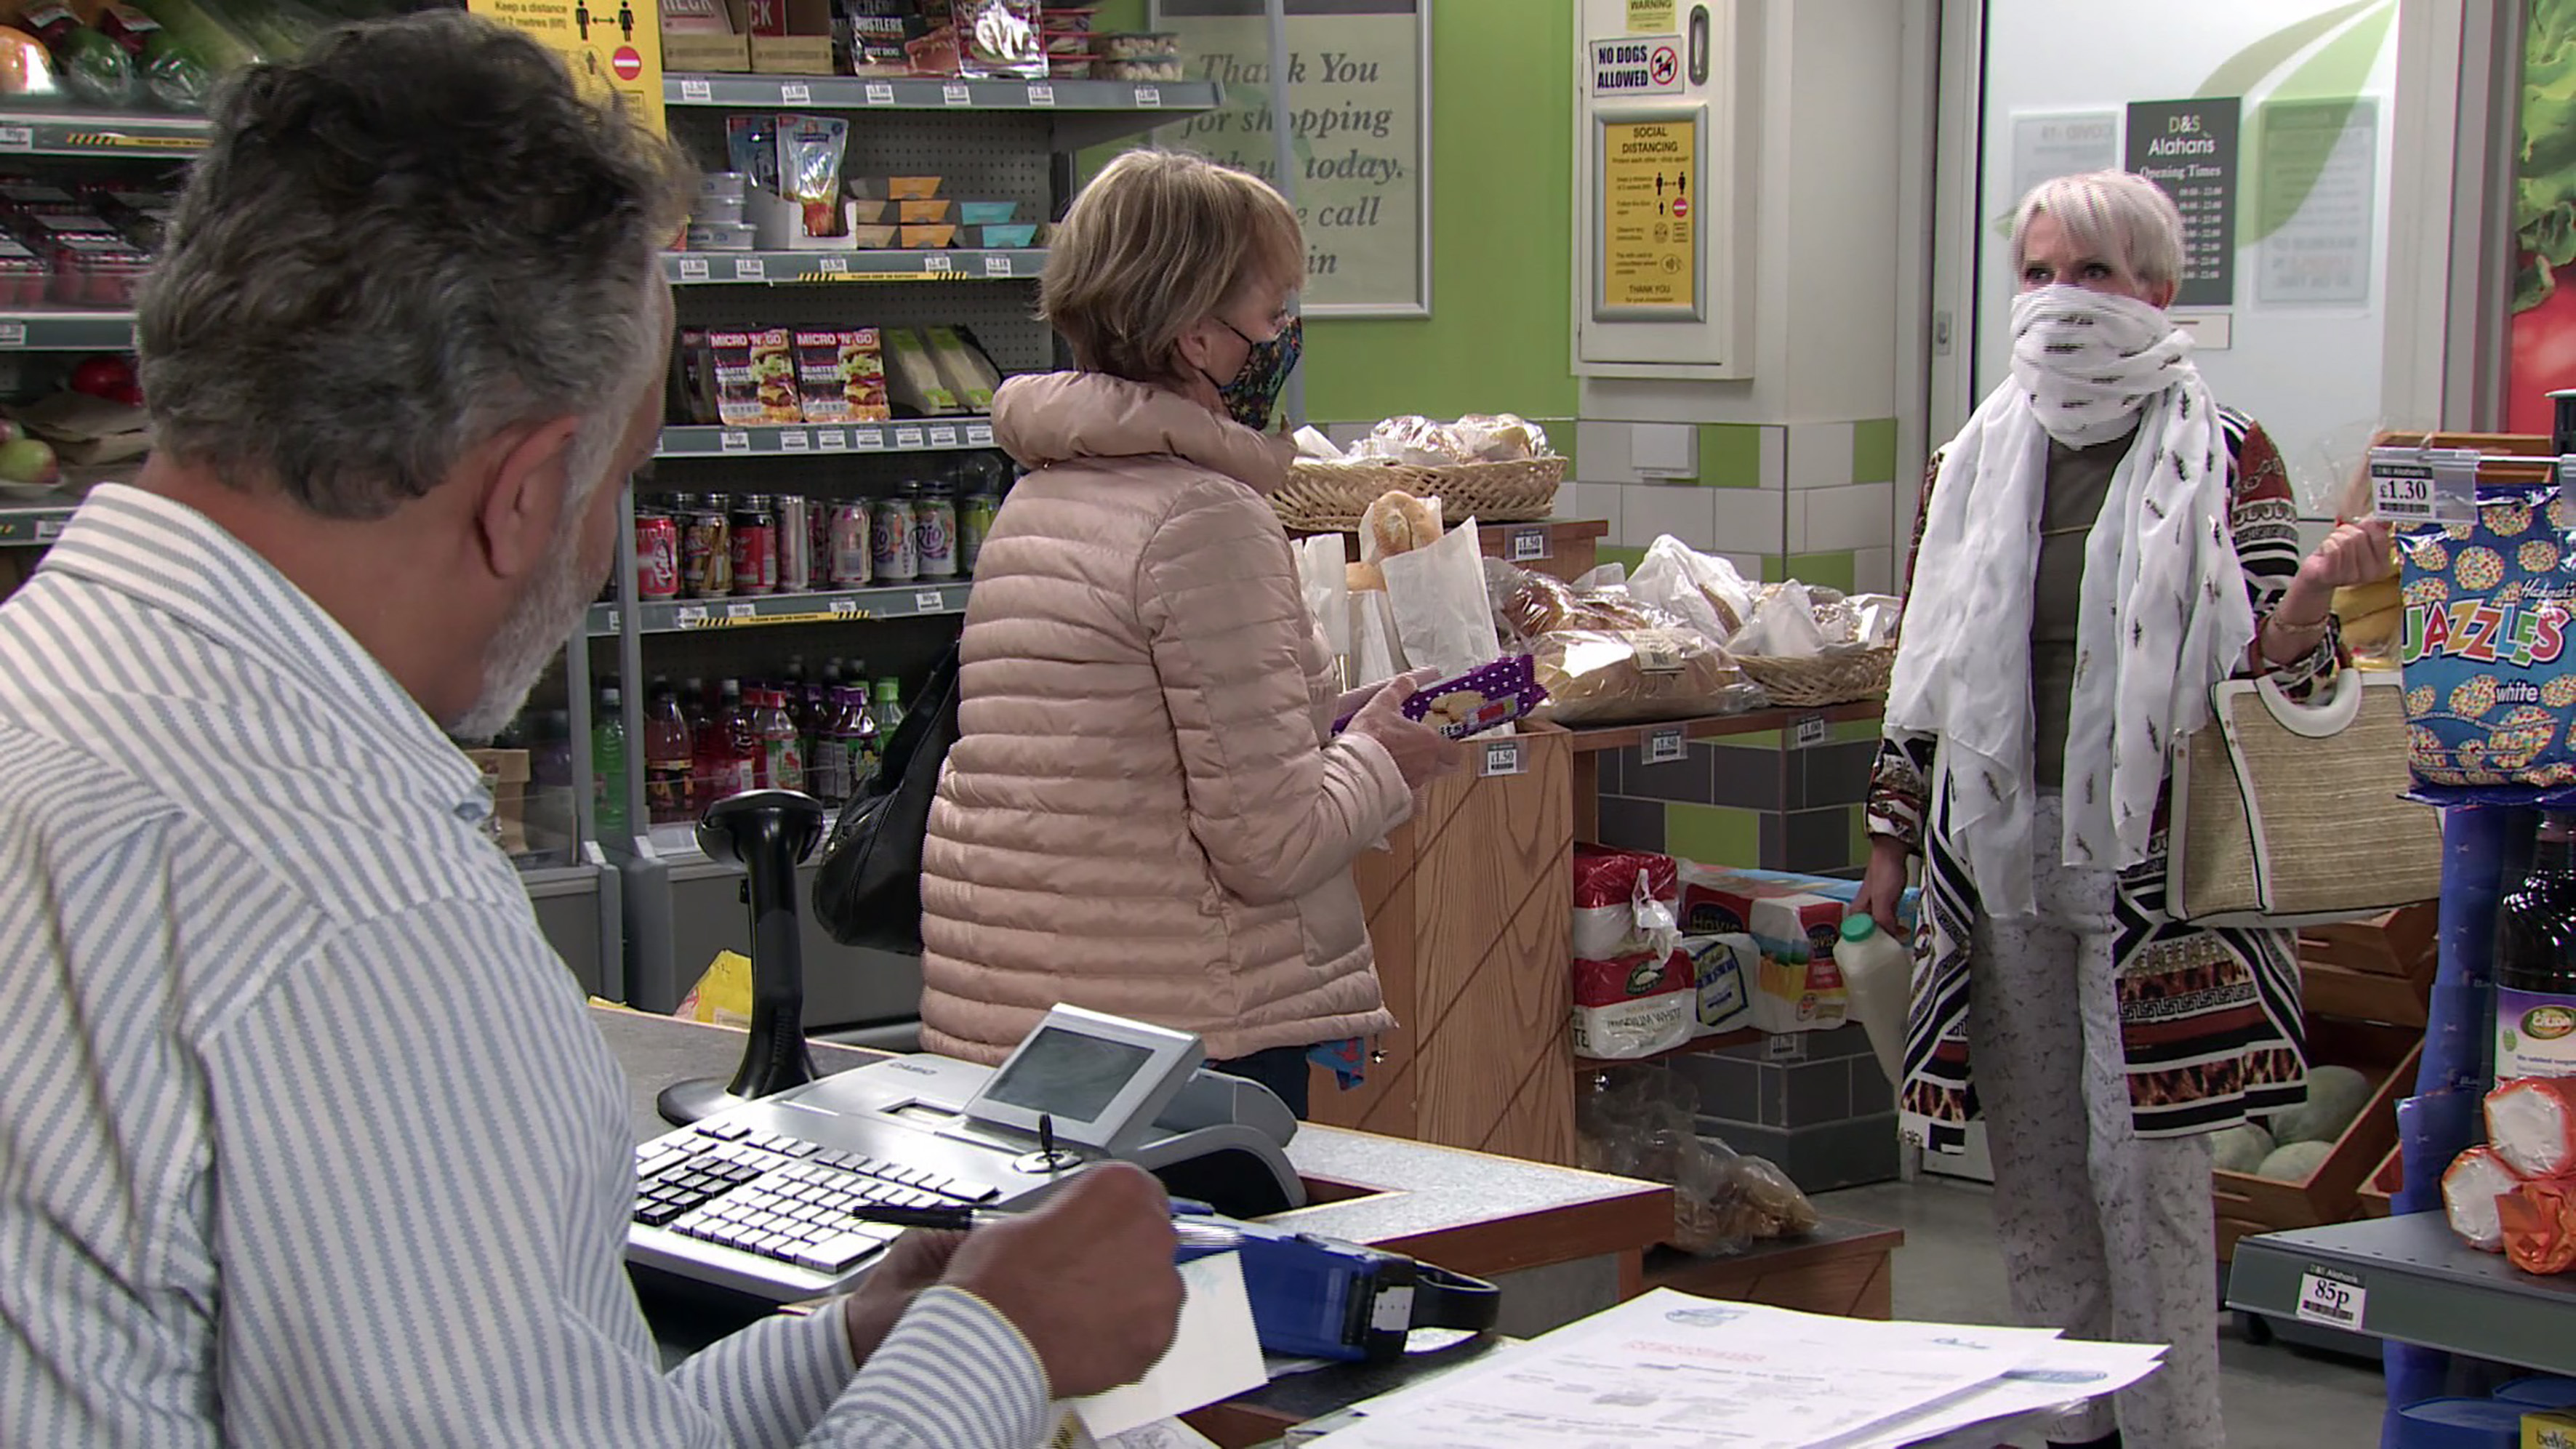 Sally Metcalfe and Debbie Webster are shown wearing face masks at the local shop in an upcoming episode of 'Coronation Street'. (ITV)